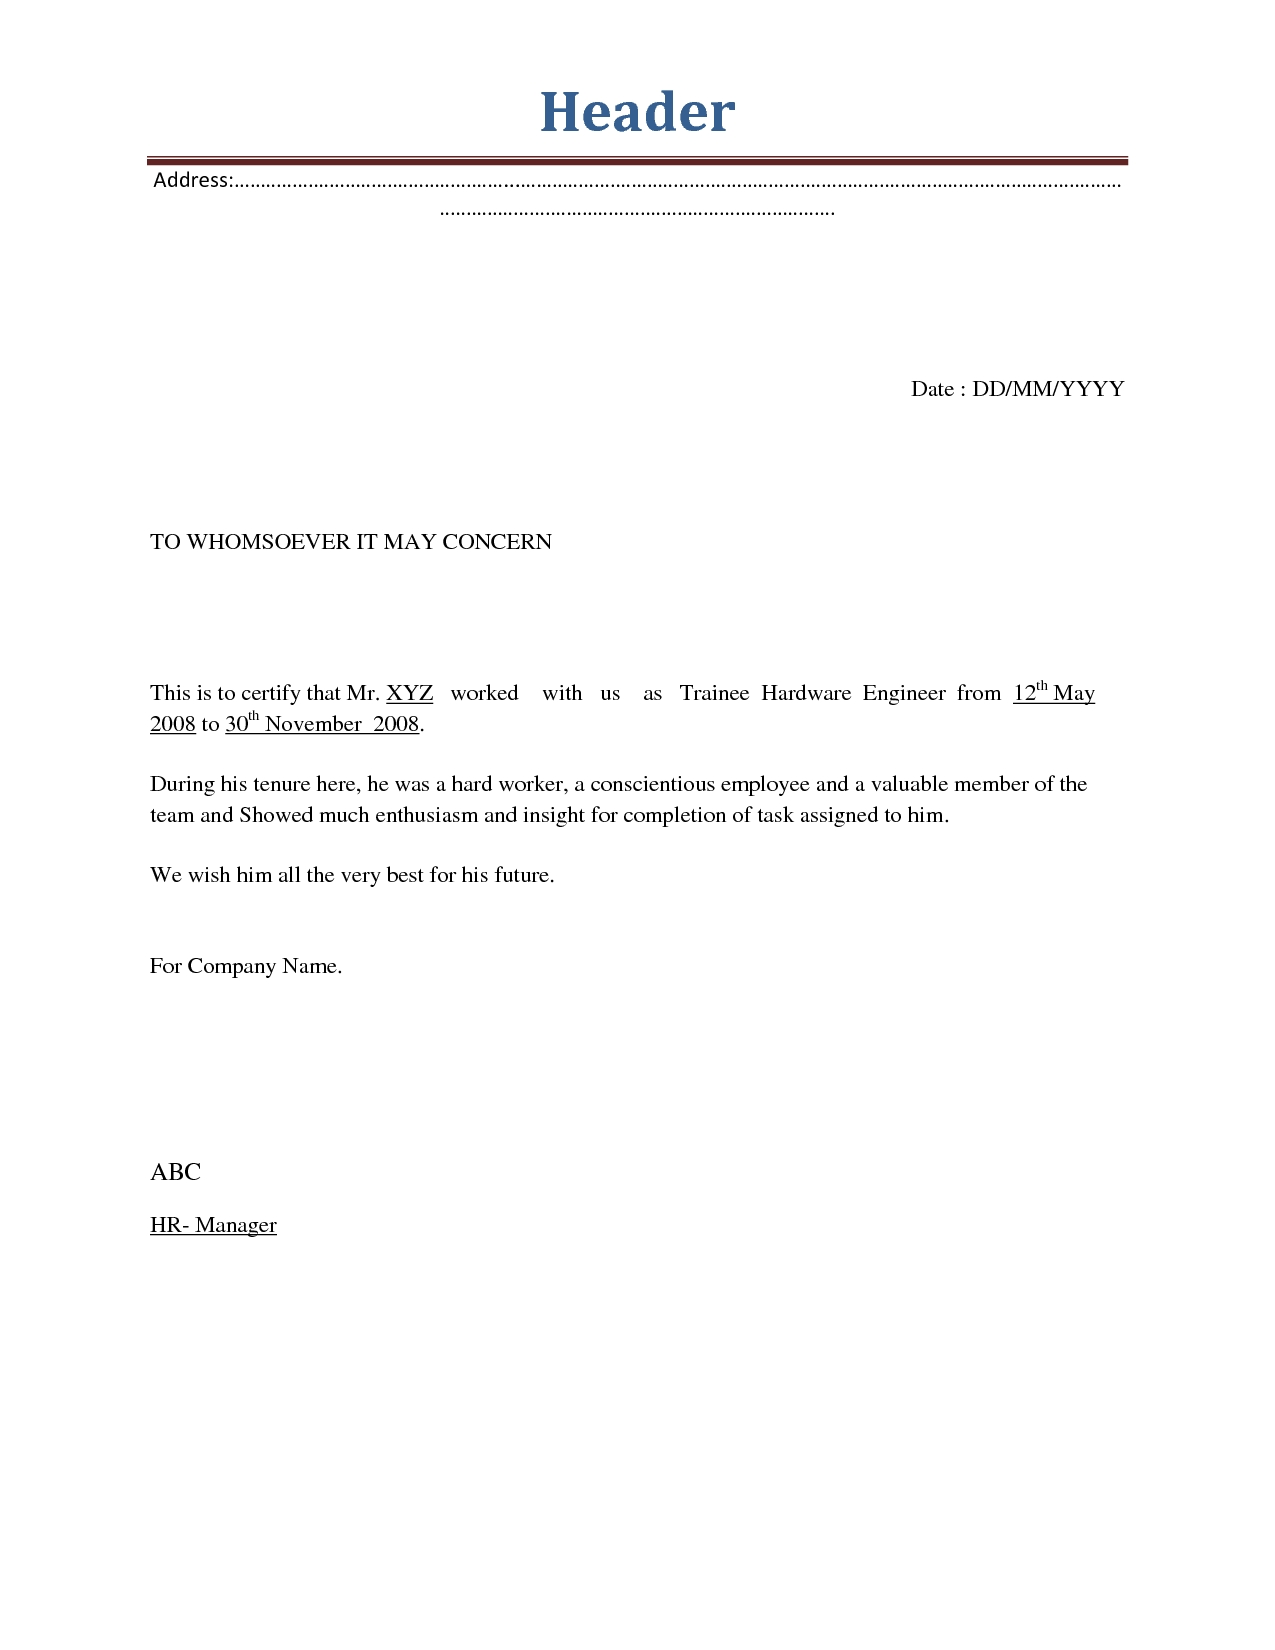 format of termination letter of employee Boat.jeremyeaton.co